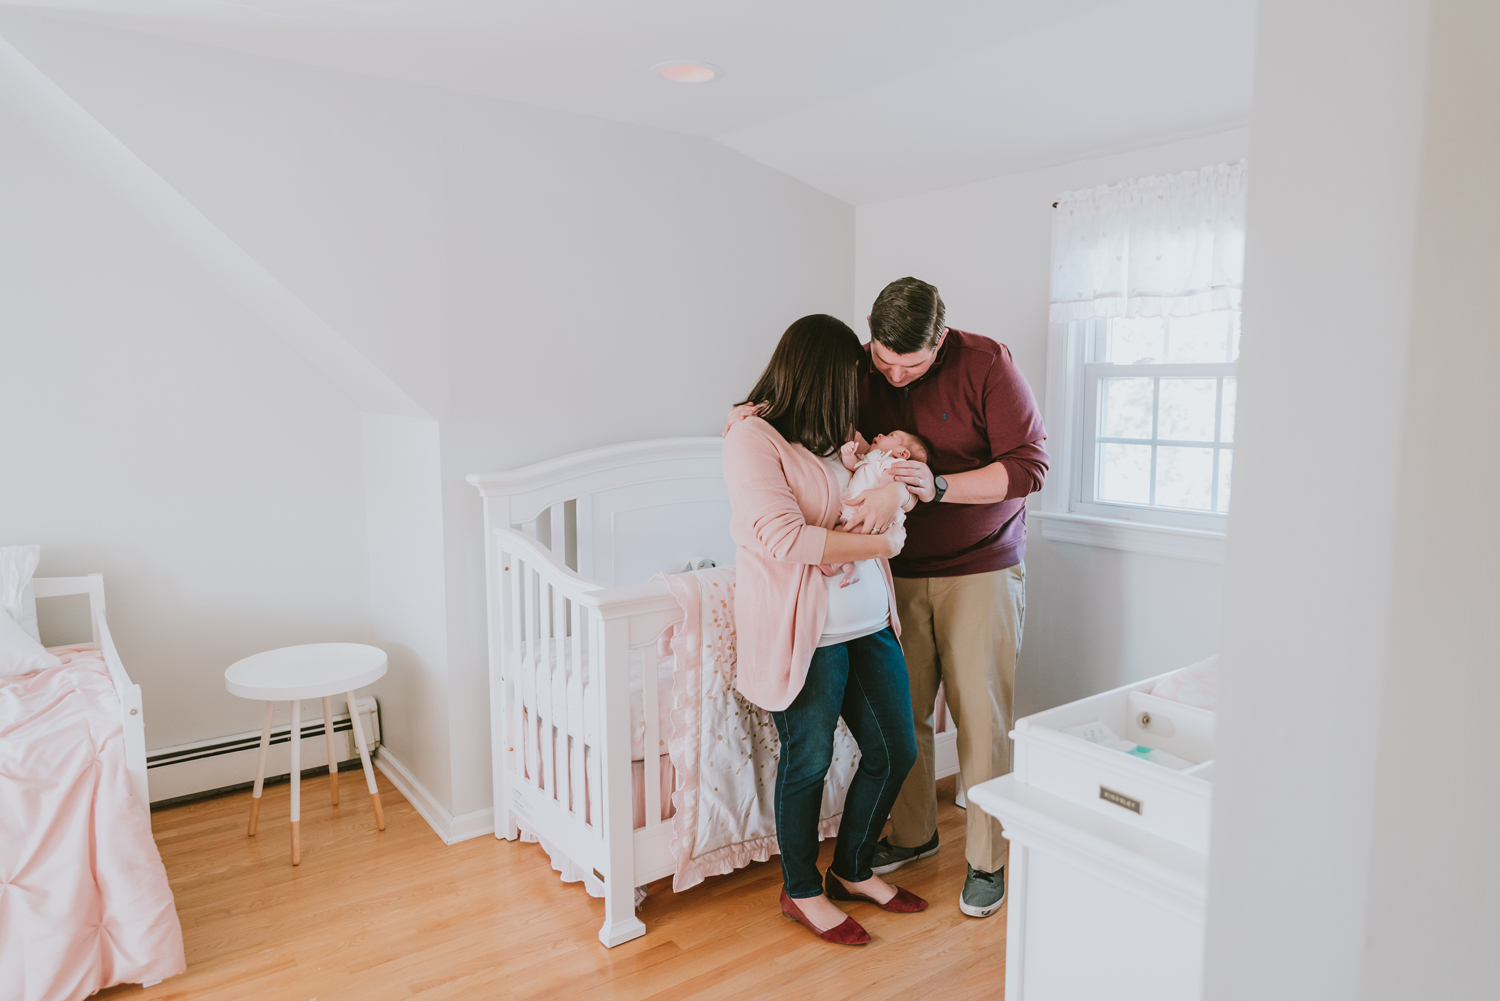 New-Family-In-Nursery-Newborn-Photography-Session-Wood-Ridge-New-Jersey